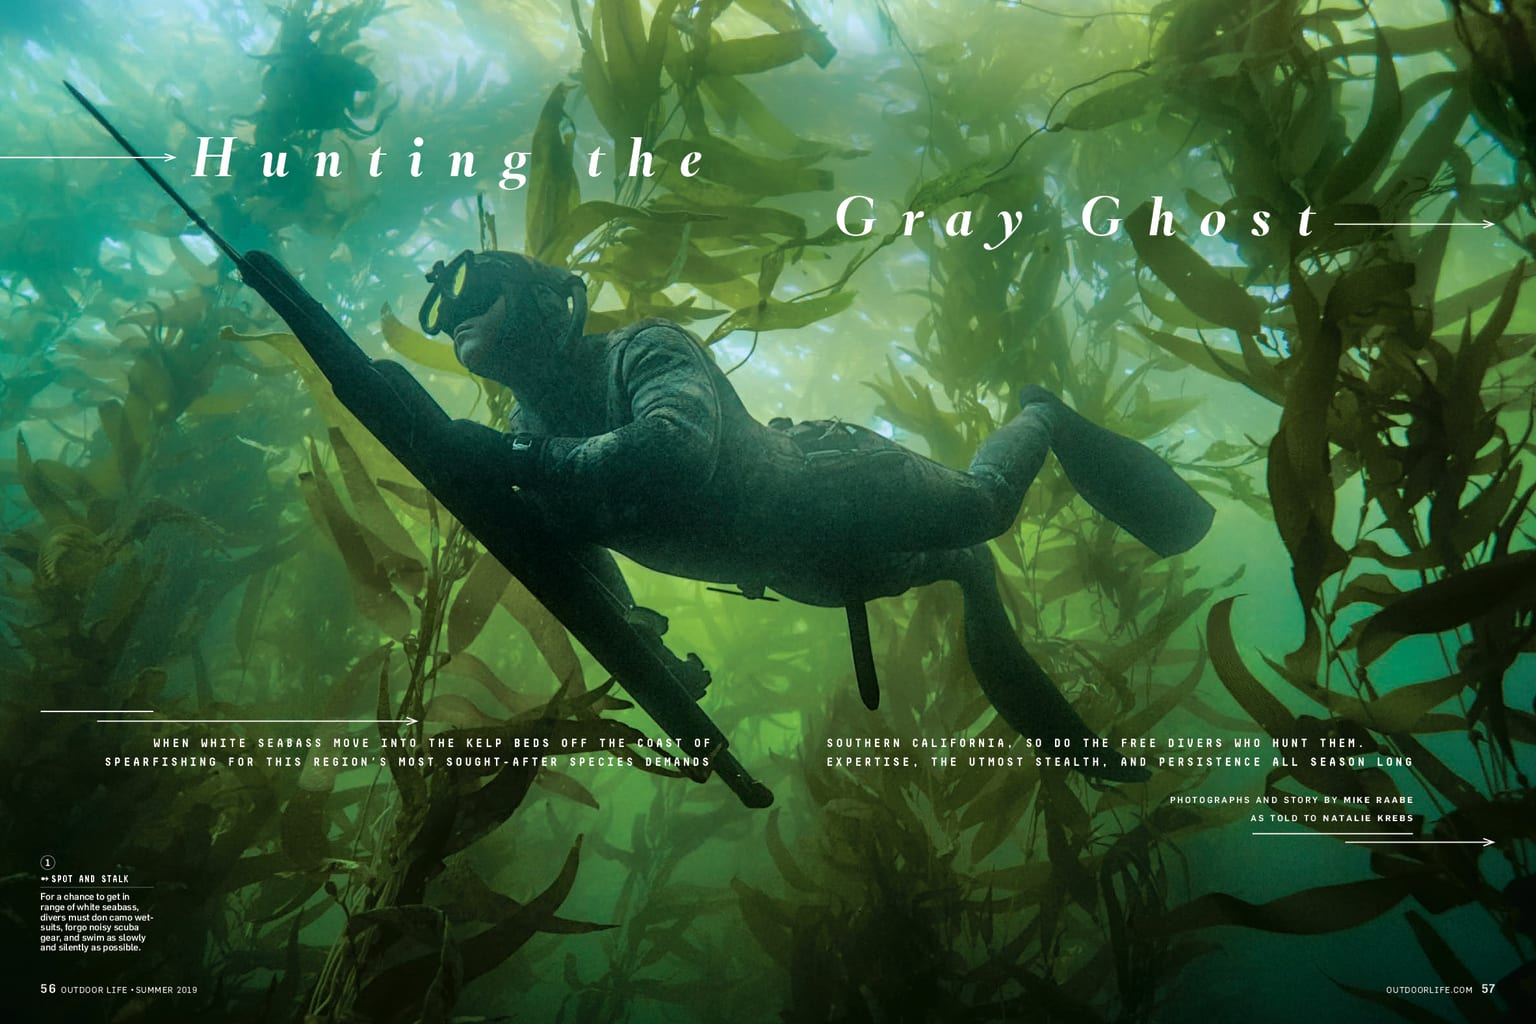 Spearfishing by Mike Raabe